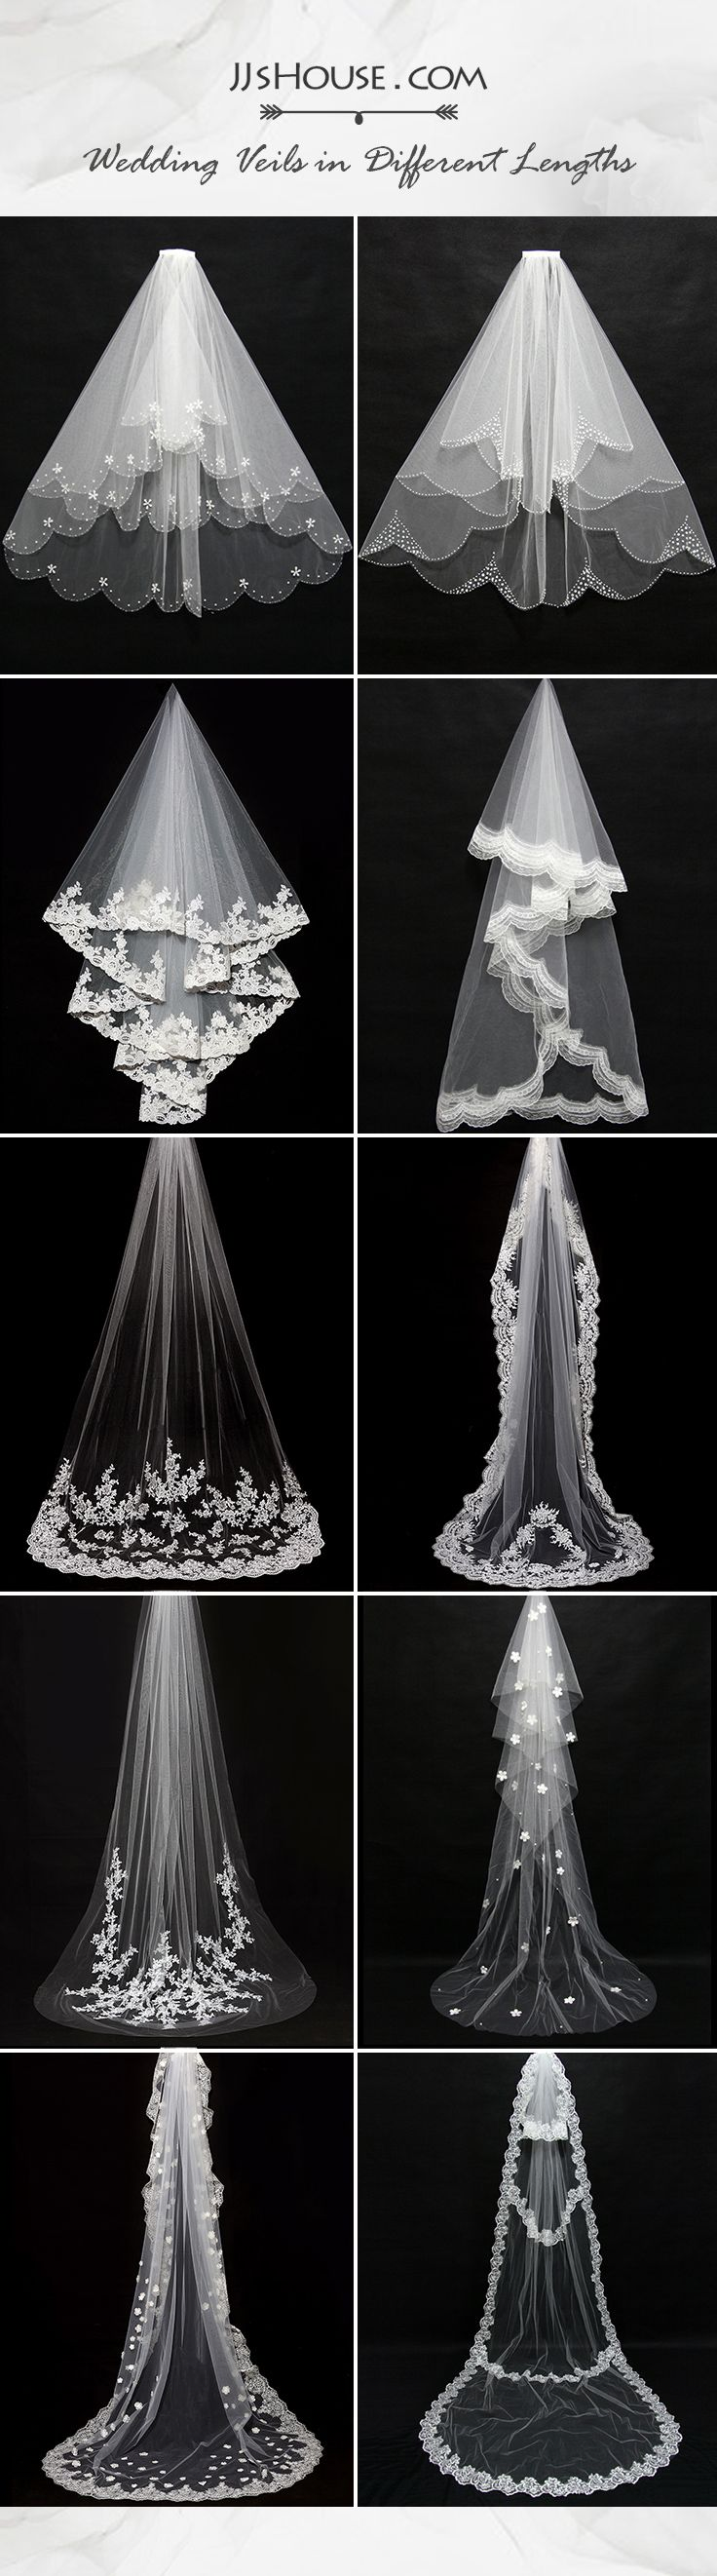 Ideas for wedding veil styles | Getting your wedding outfit perfect with a right wedding veil. #JJsHouse